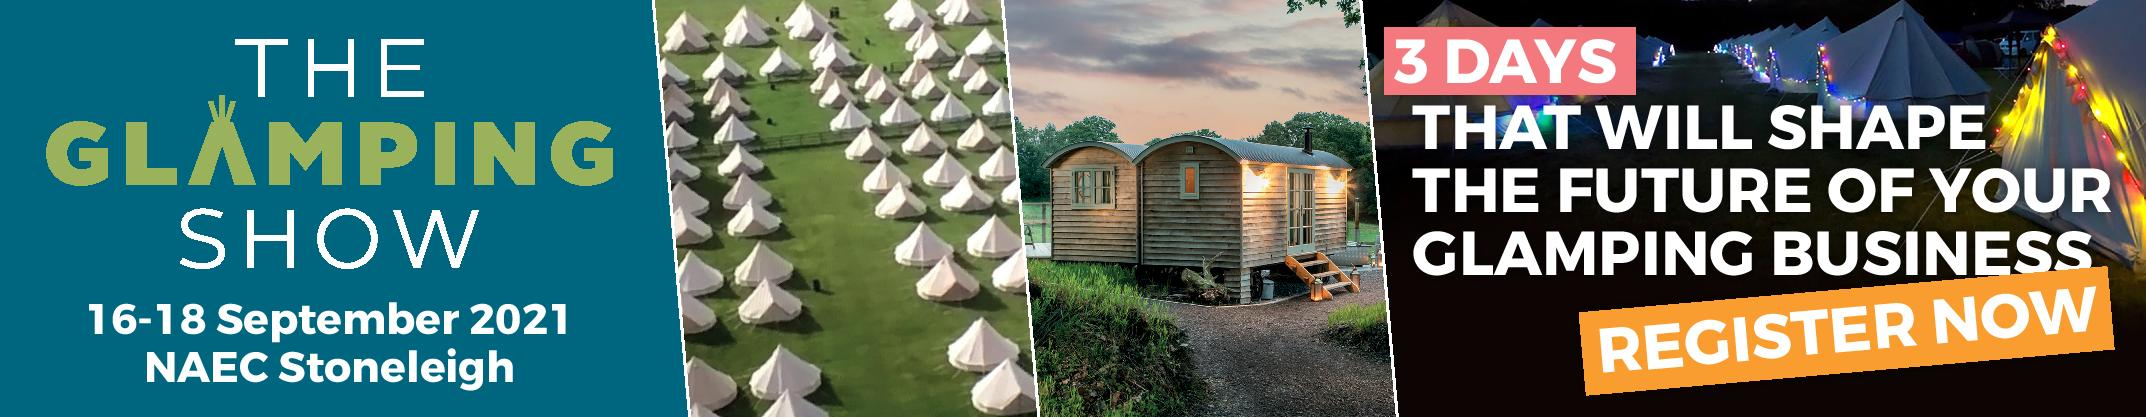 Glamping Show 2021